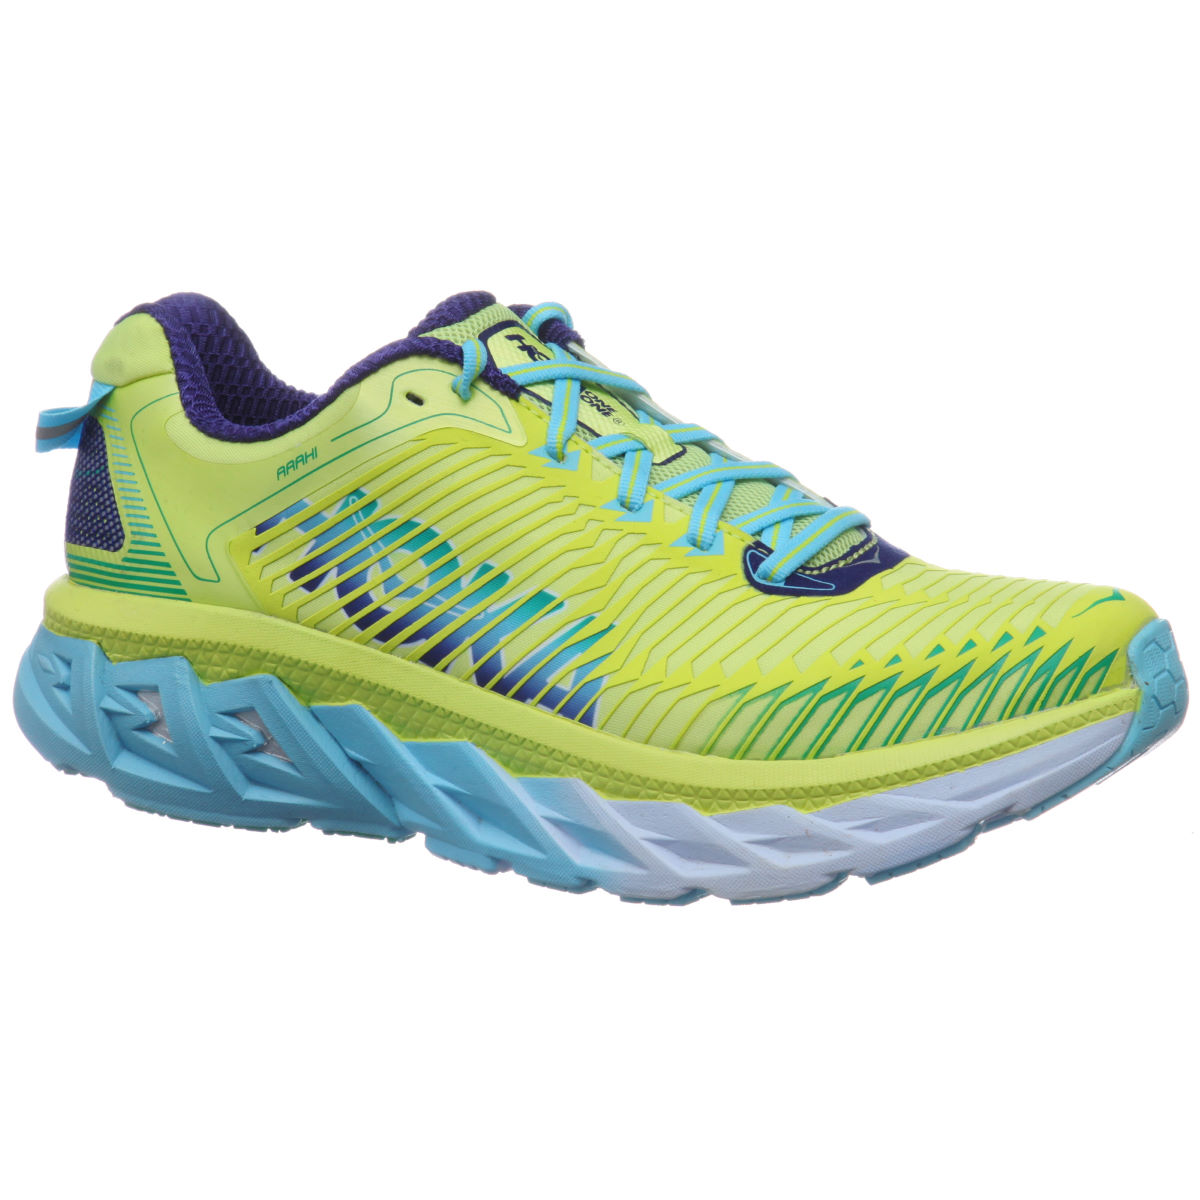 Chaussures Femme Hoka One One Arahi - UK 6 Sunny Lime/Blue Topa